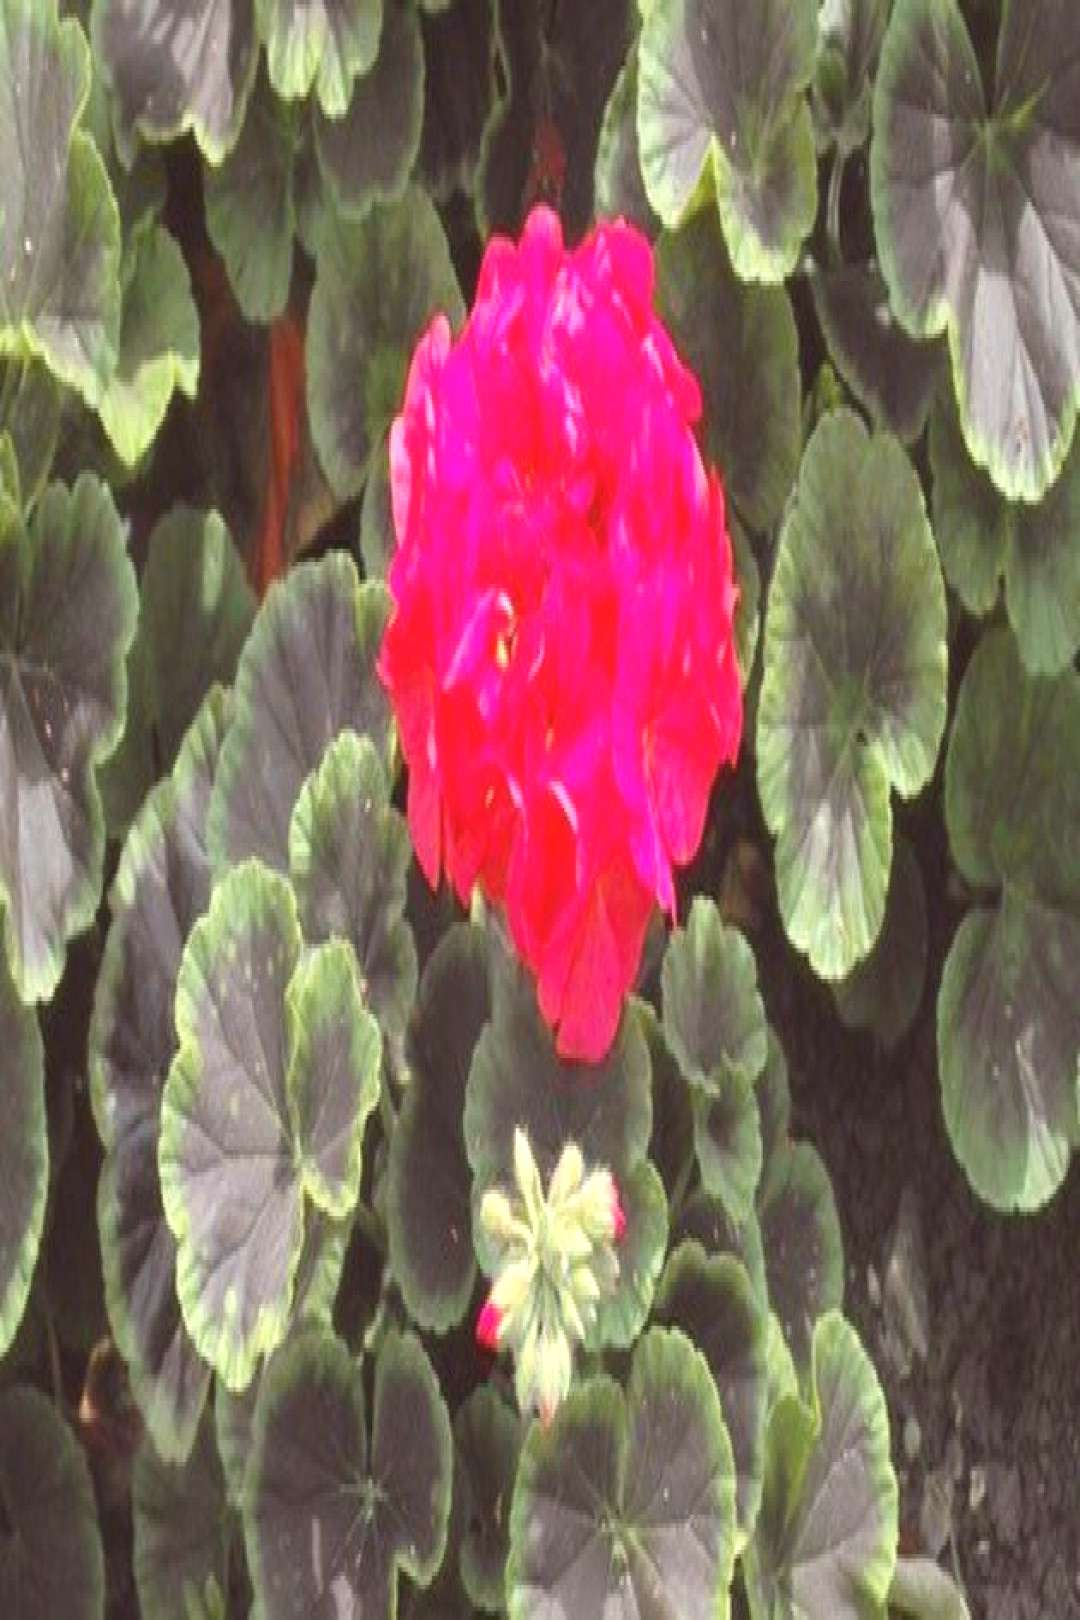 How to Trim Geraniums So They Bloom Again